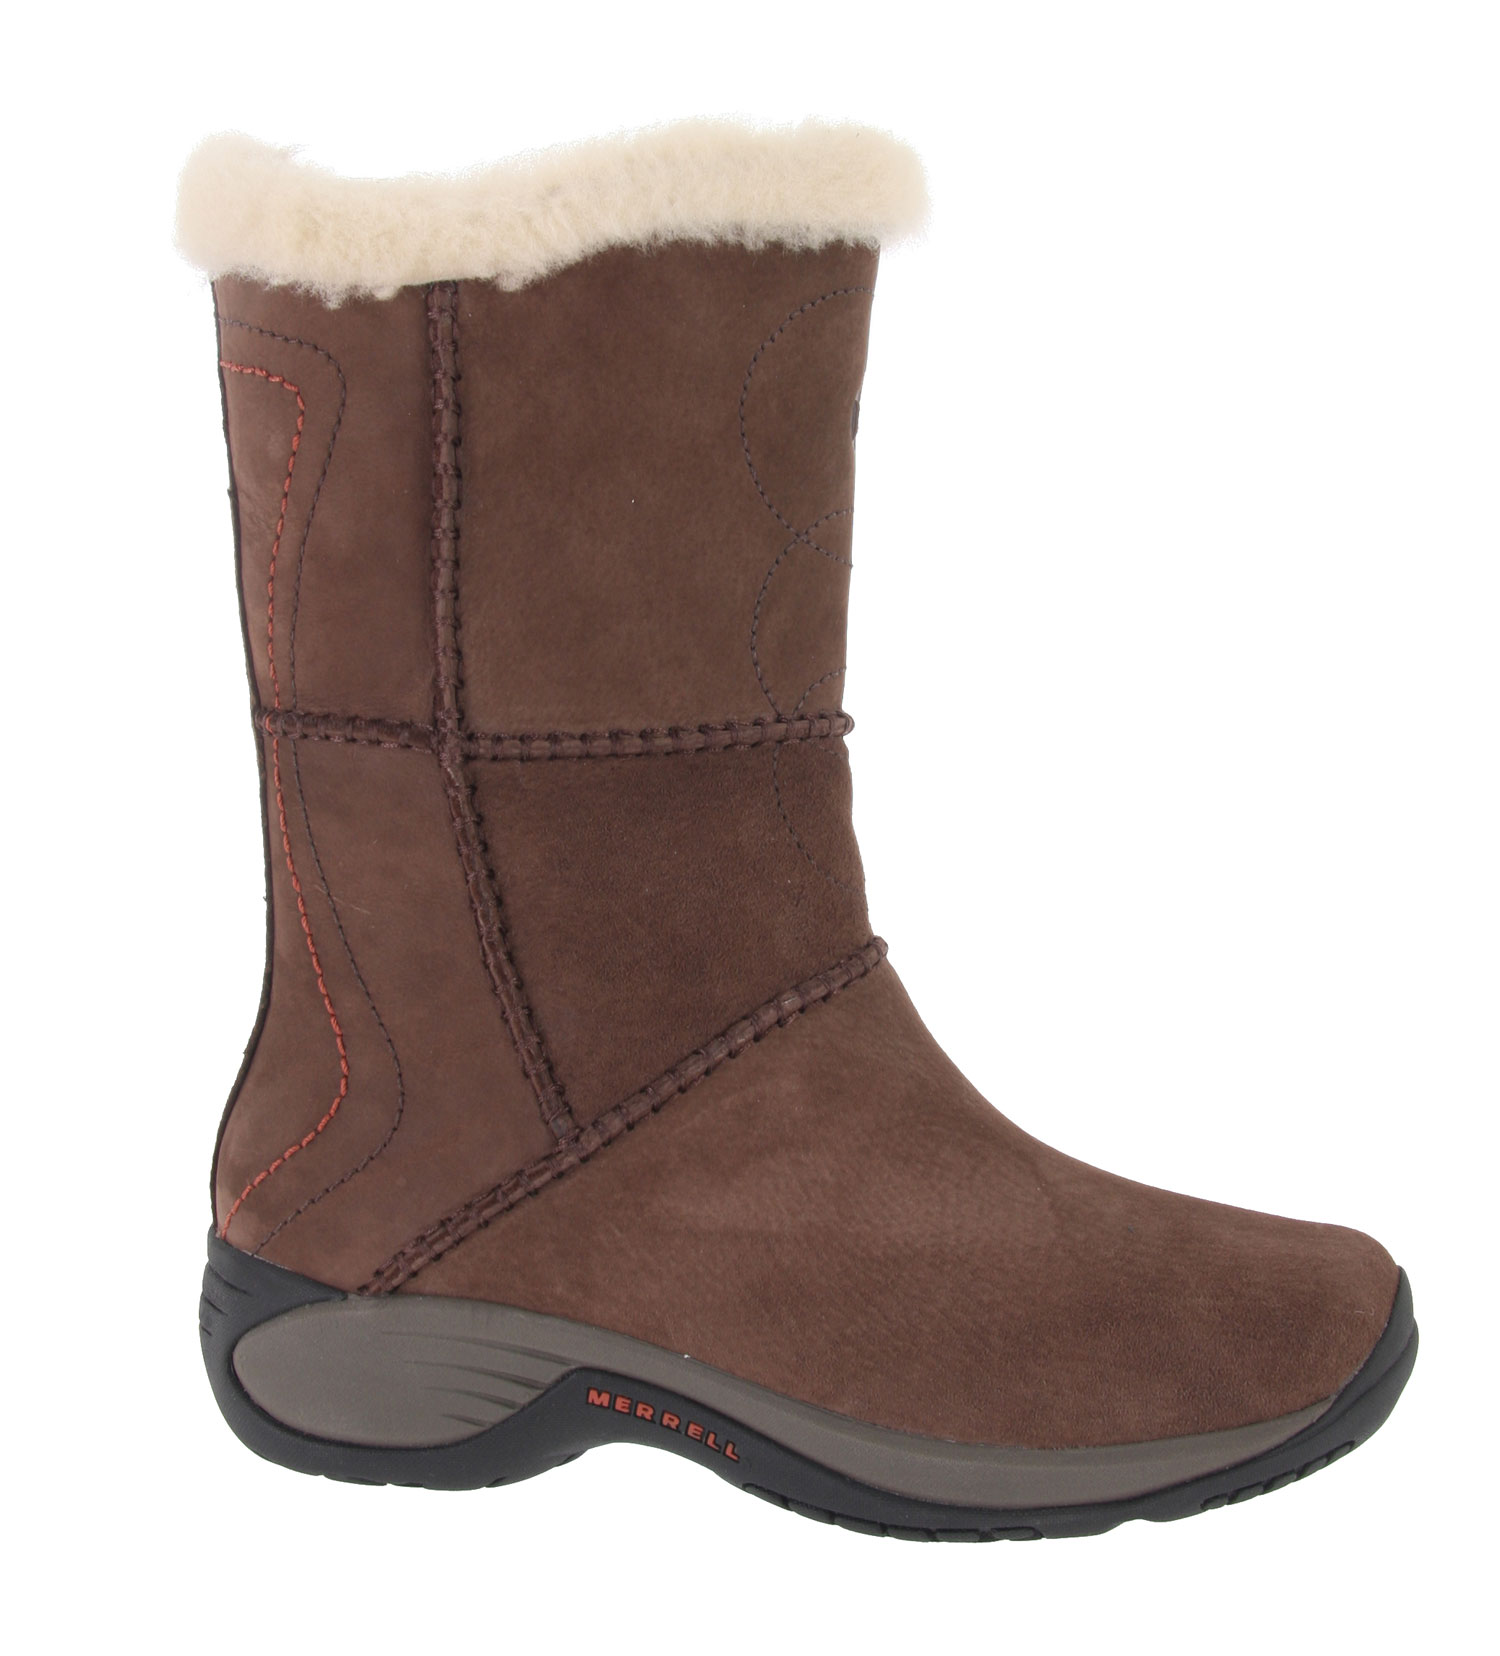 We up the ante on winter boot style and comfort with our Peak - an Encore comfort platform below the savory style of this water-resistant, handcraft stitched suede and nubuck upper, sheepskin collar and lining for plush warmth. A wool fleece footbed naturally manages moisture, and sits on top of a durable EVA QForm Comfort midsole that matches and catches your stride.Key Features of the Merrell Encore Peak Boots: Cement construction provides lightweight durability Pig suede and nubuck upper, water-resistant Sheepskin lining Wool fleece footbed Molded nylon arch shank QForm Comfort EVA Midsole provides women's specific stride-sequenced cushioning Merrell Air Cushion in the heel absorbs shock and add stability Merrell Encore 2 Sole/Sticky Rubber - $83.95